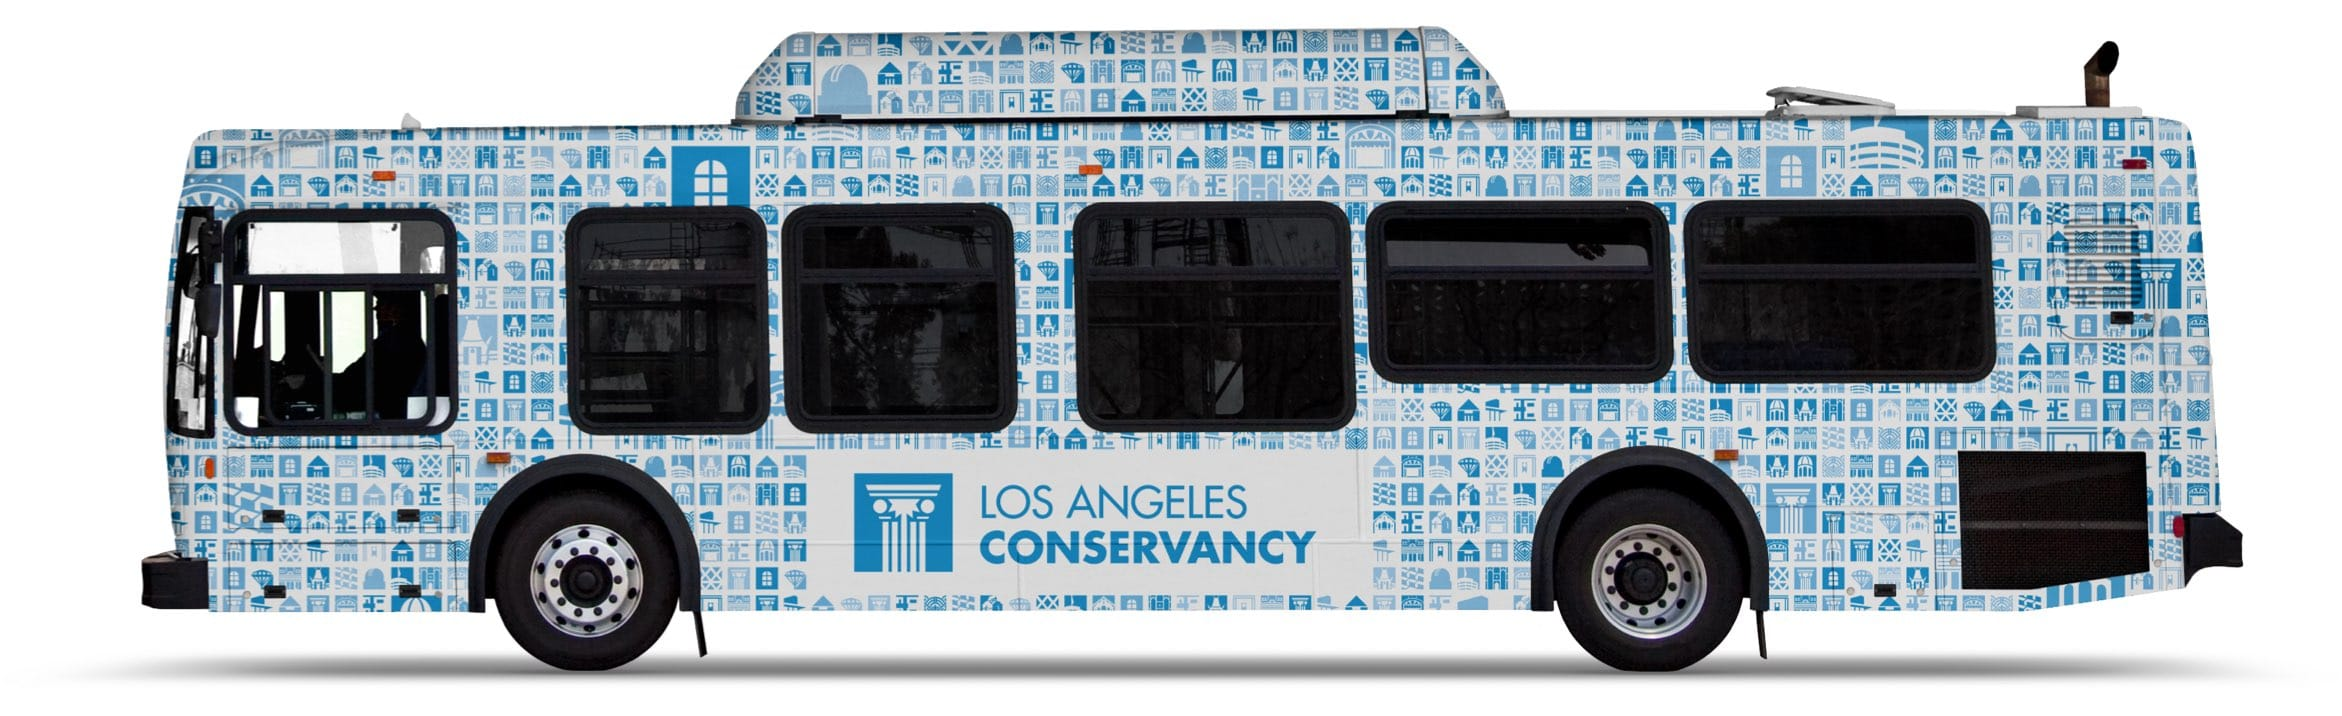 city bus wrapped with the LA Conservancy brand identity